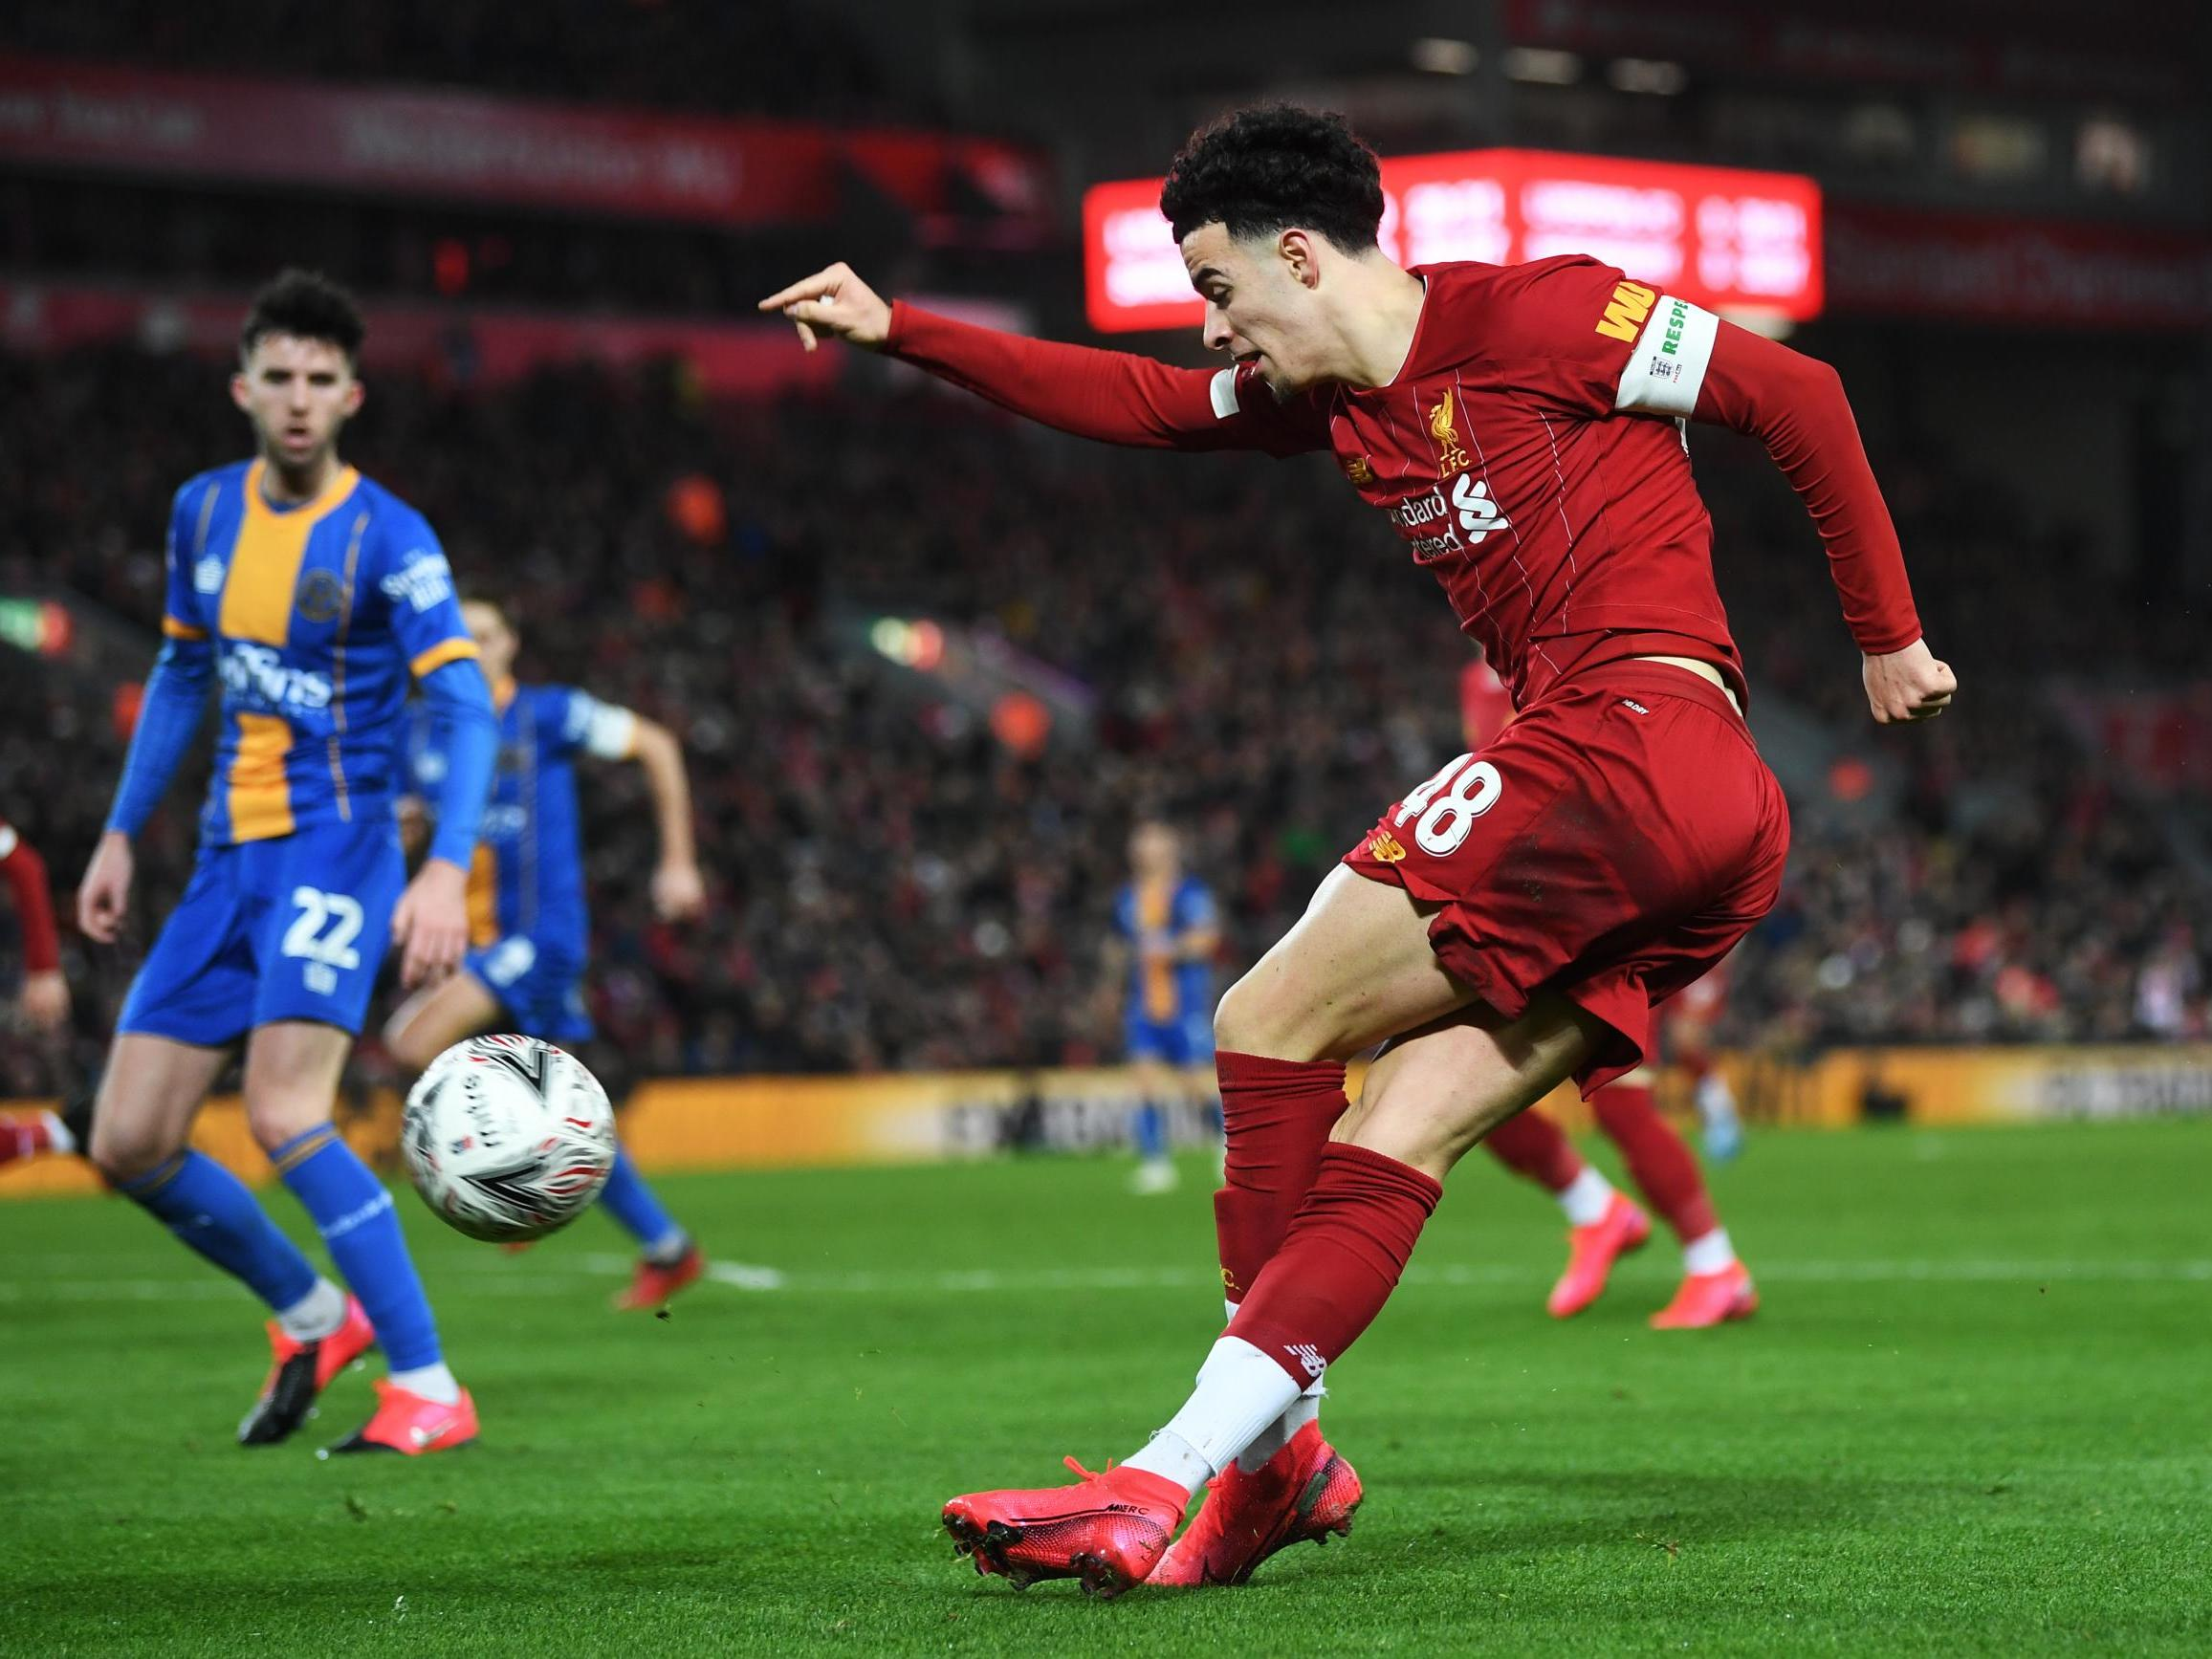 Liverpool vs Shrewsbury: Five things we learned from the FA Cup fourth round replay as Curtis Jones stars